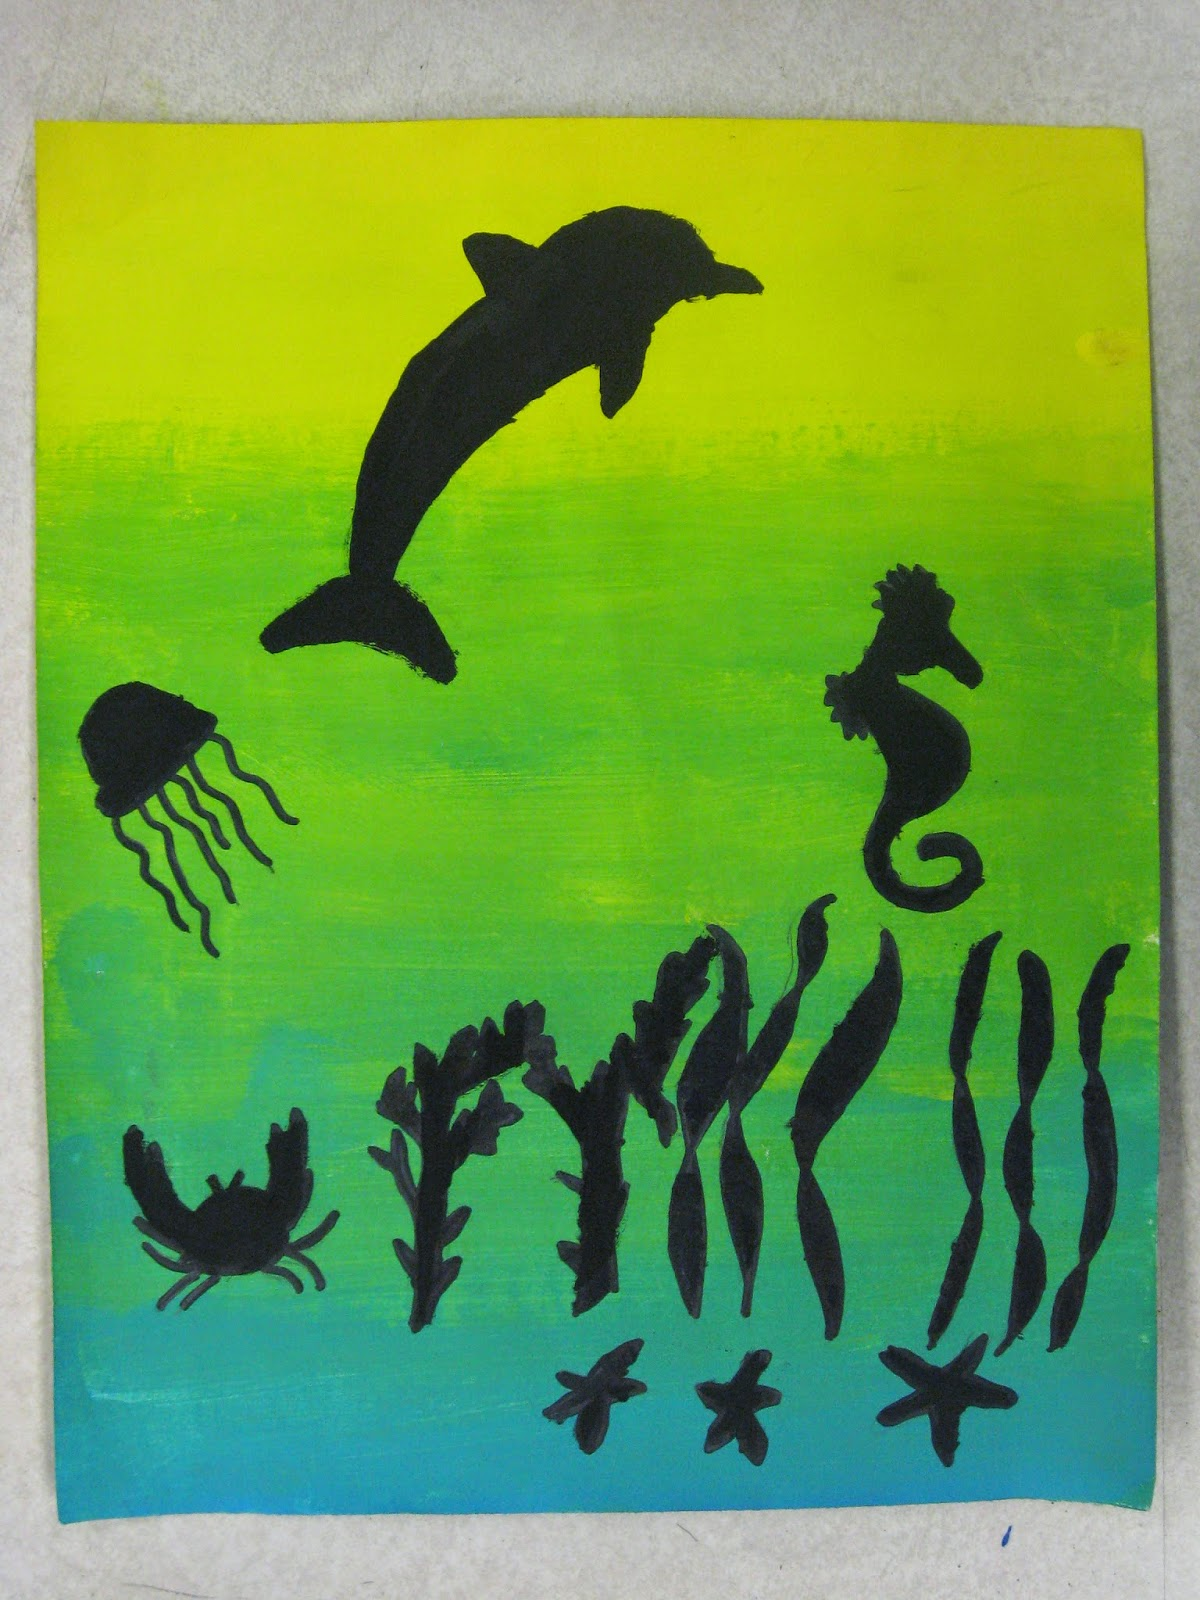 Their Analogous Colored Painting I Encouraged Them To Create A Silhouette Of Something That They Liked Many Choose Sports Themes Or Favorite Animals